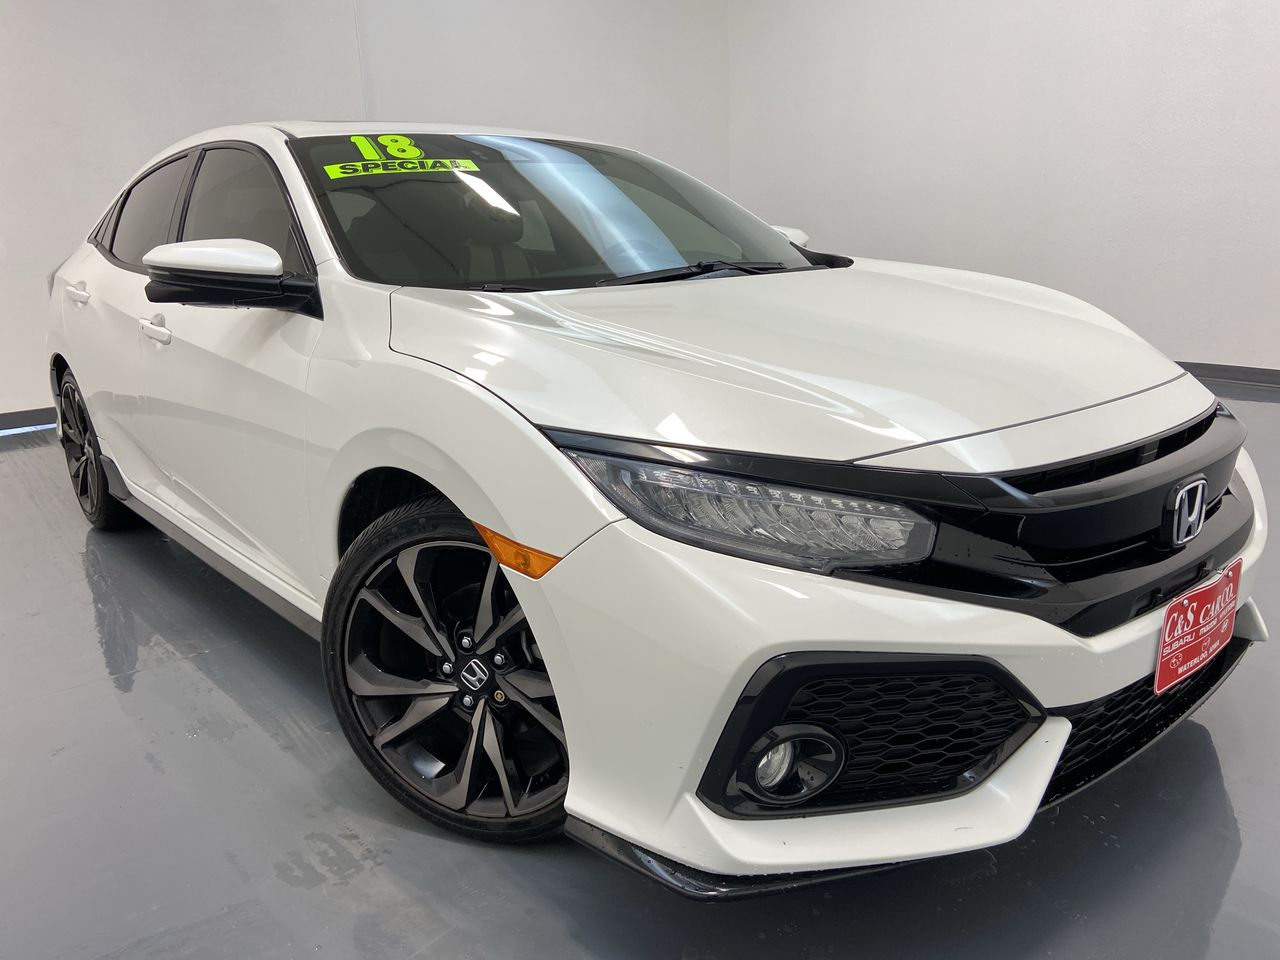 2018 Honda Civic Hatchback 4D Hatchback at  - SB8799A  - C & S Car Company